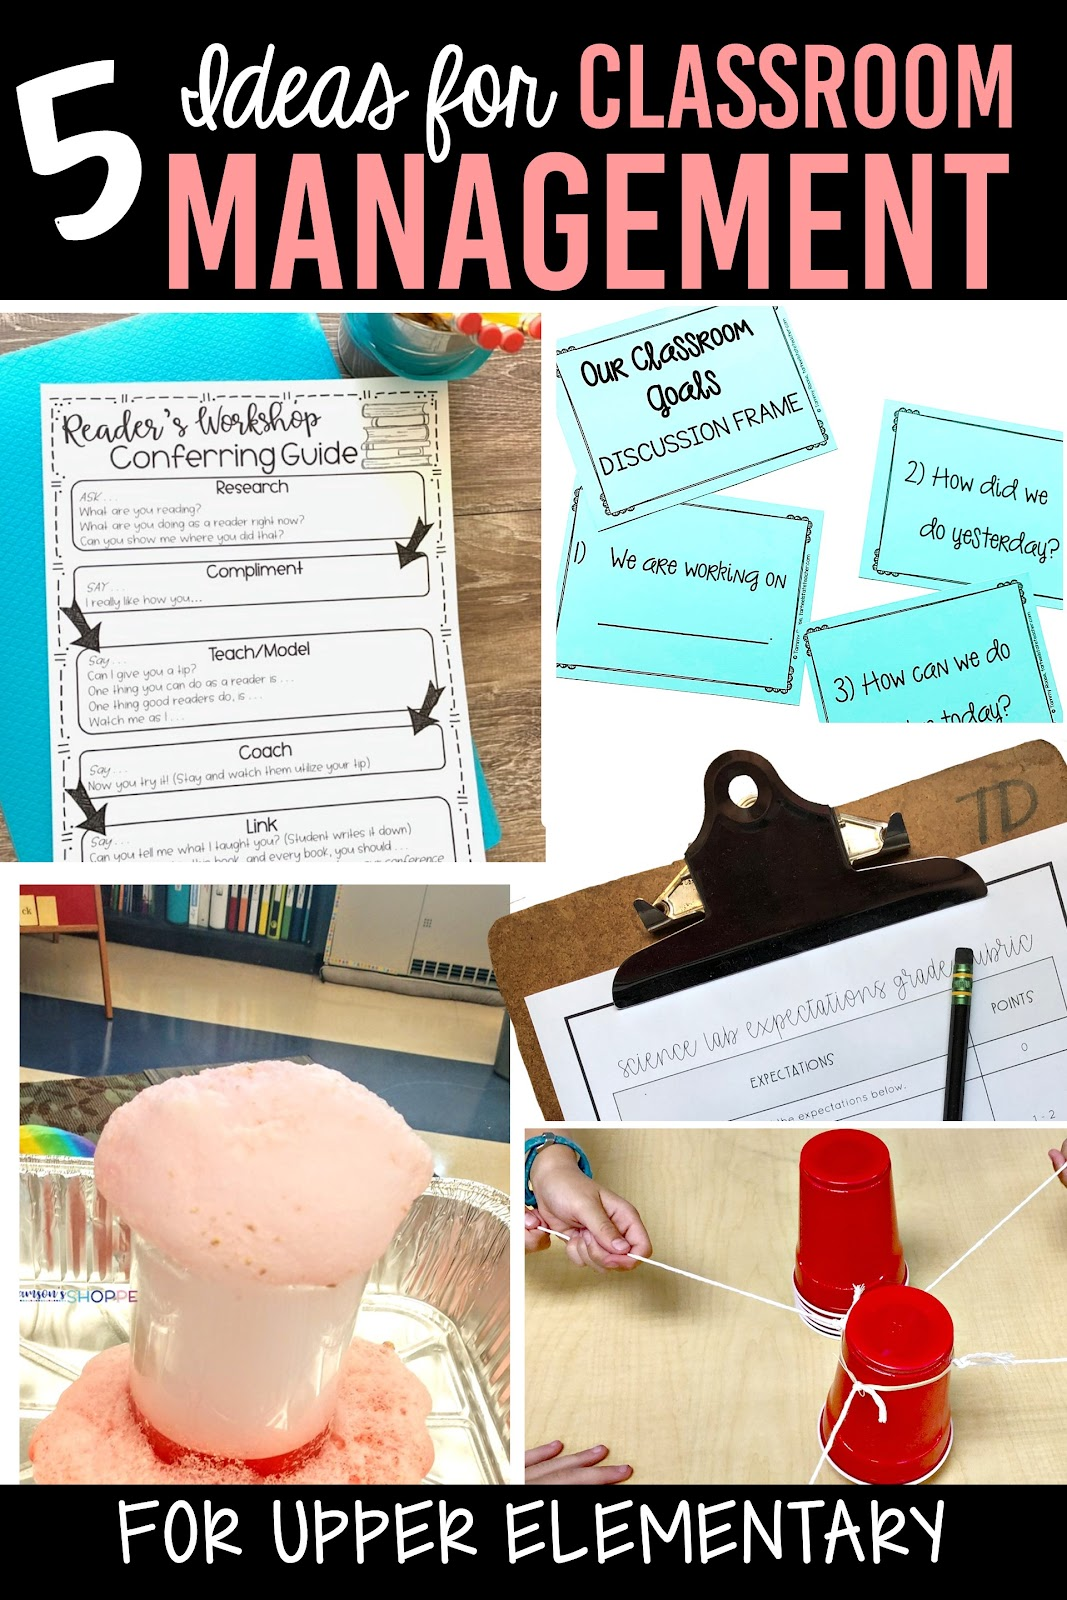 5 ideas for classroom management